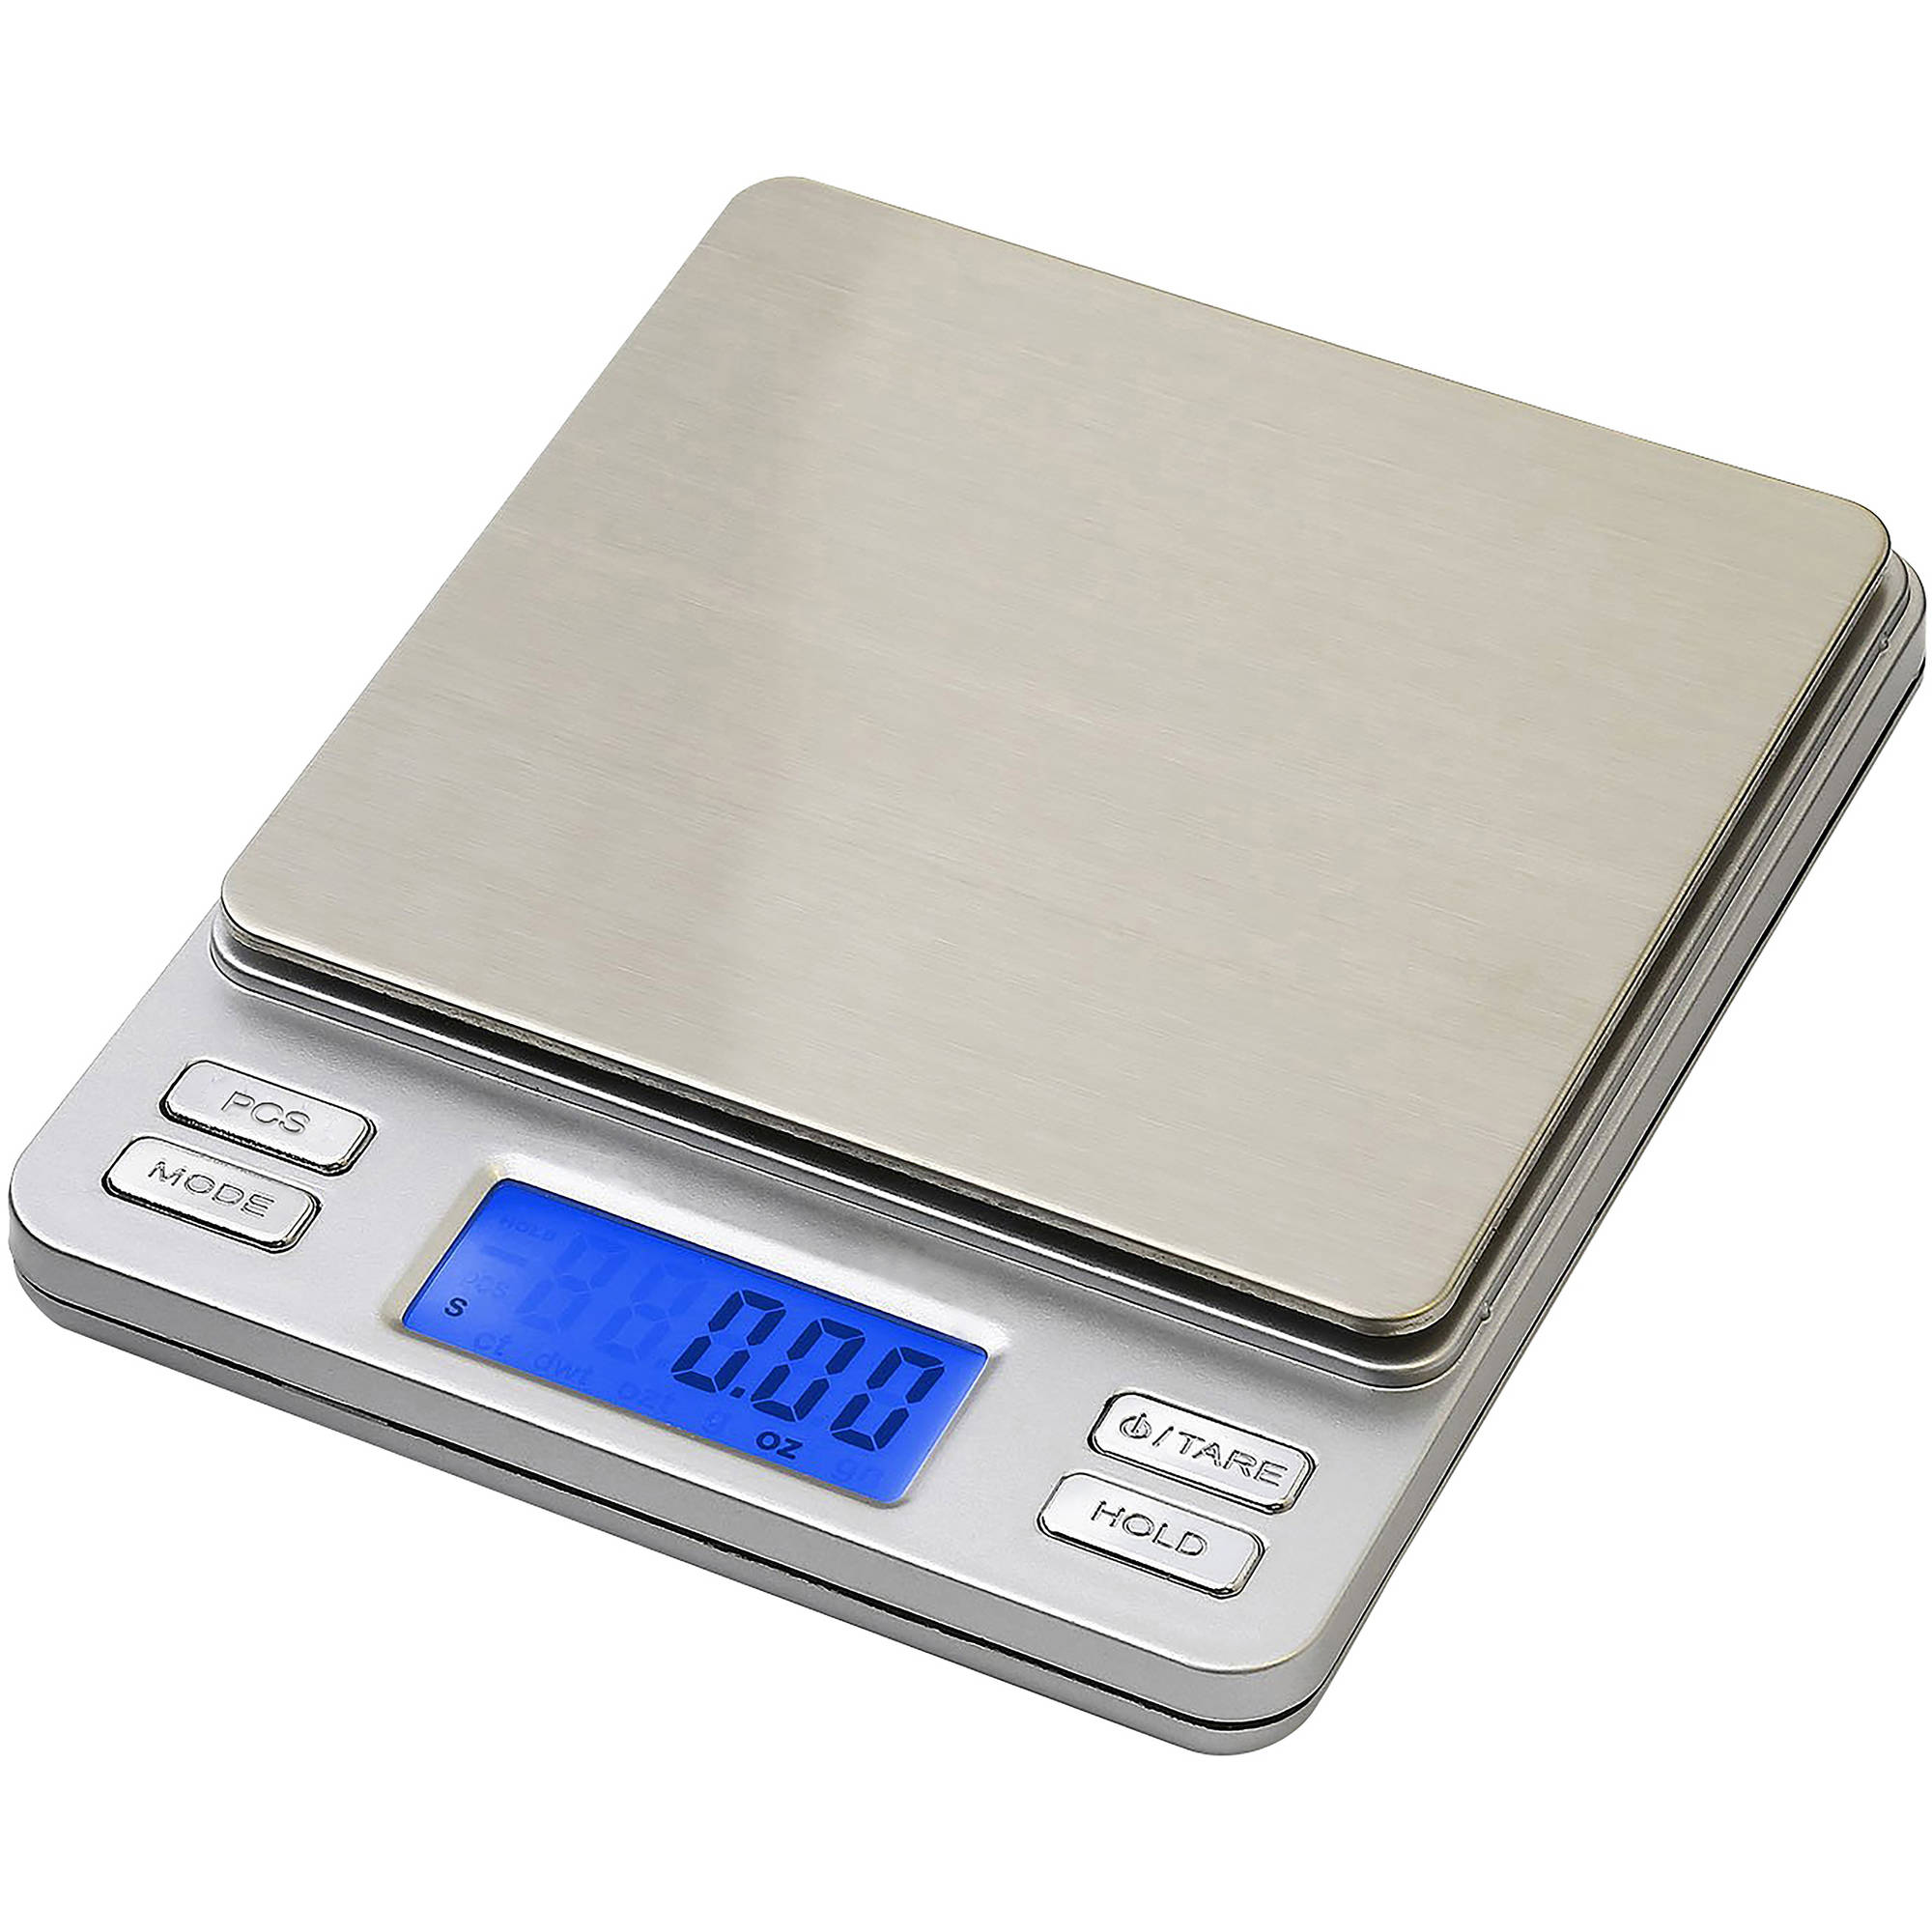 Smart Weigh Smart Weigh Digital Pro Pocket Scale with Back-Lit LCD Display, Tare, Hold and PCS Features, 500 x 0.01g, 2 Lids Included, Silver, SW-TOP500-SIL